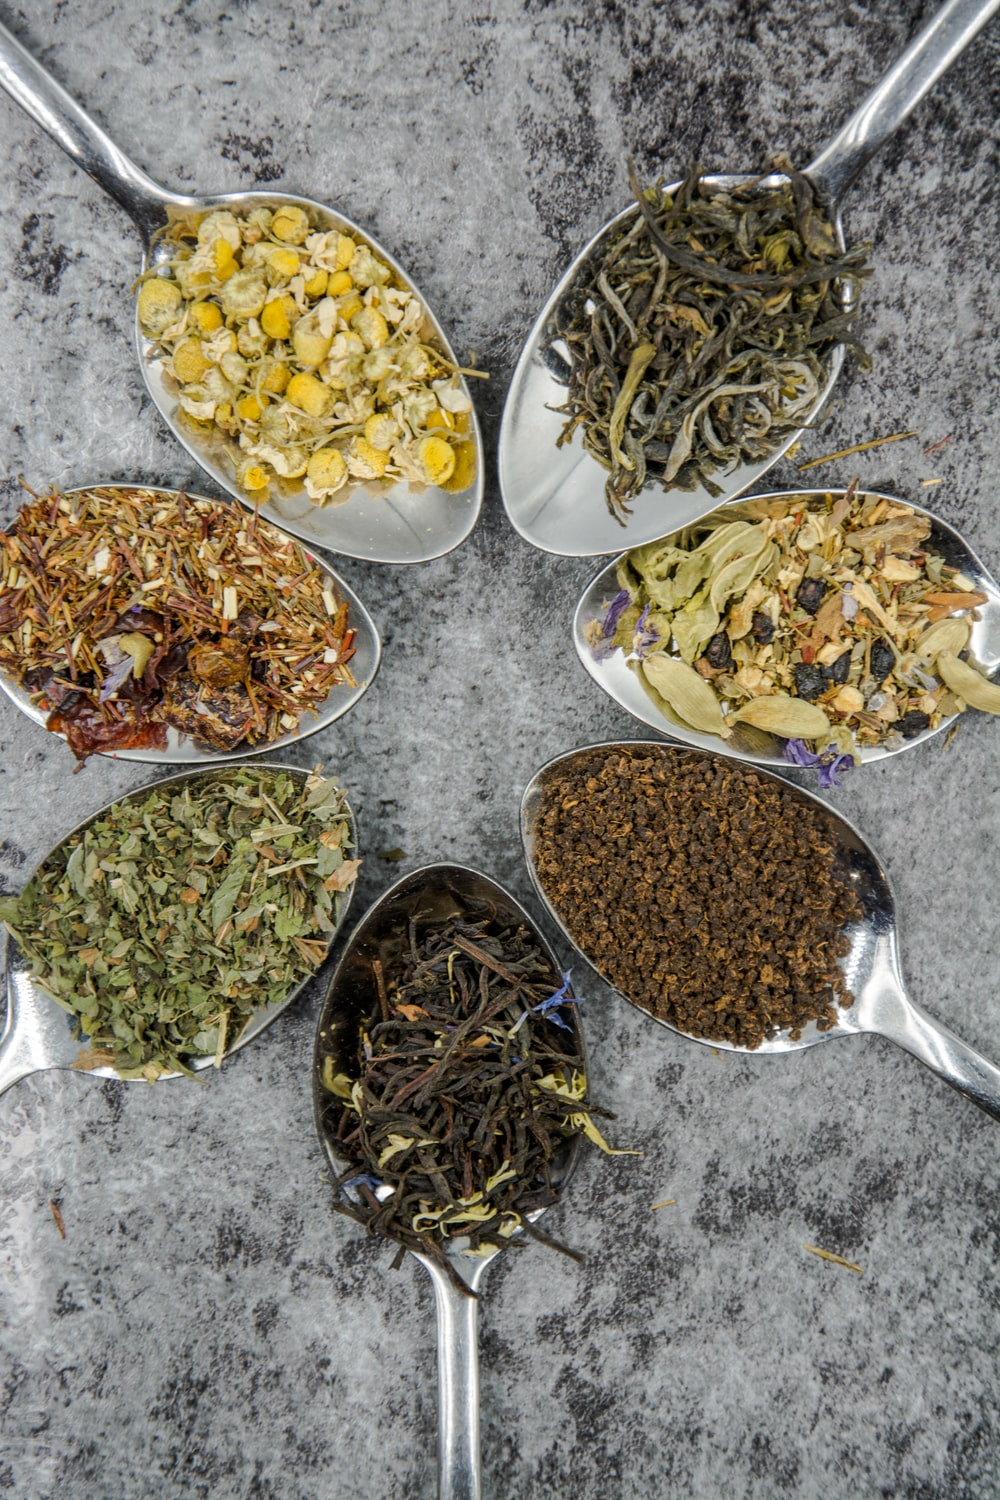 seven different spices and herbs on gray stainless steel spoons